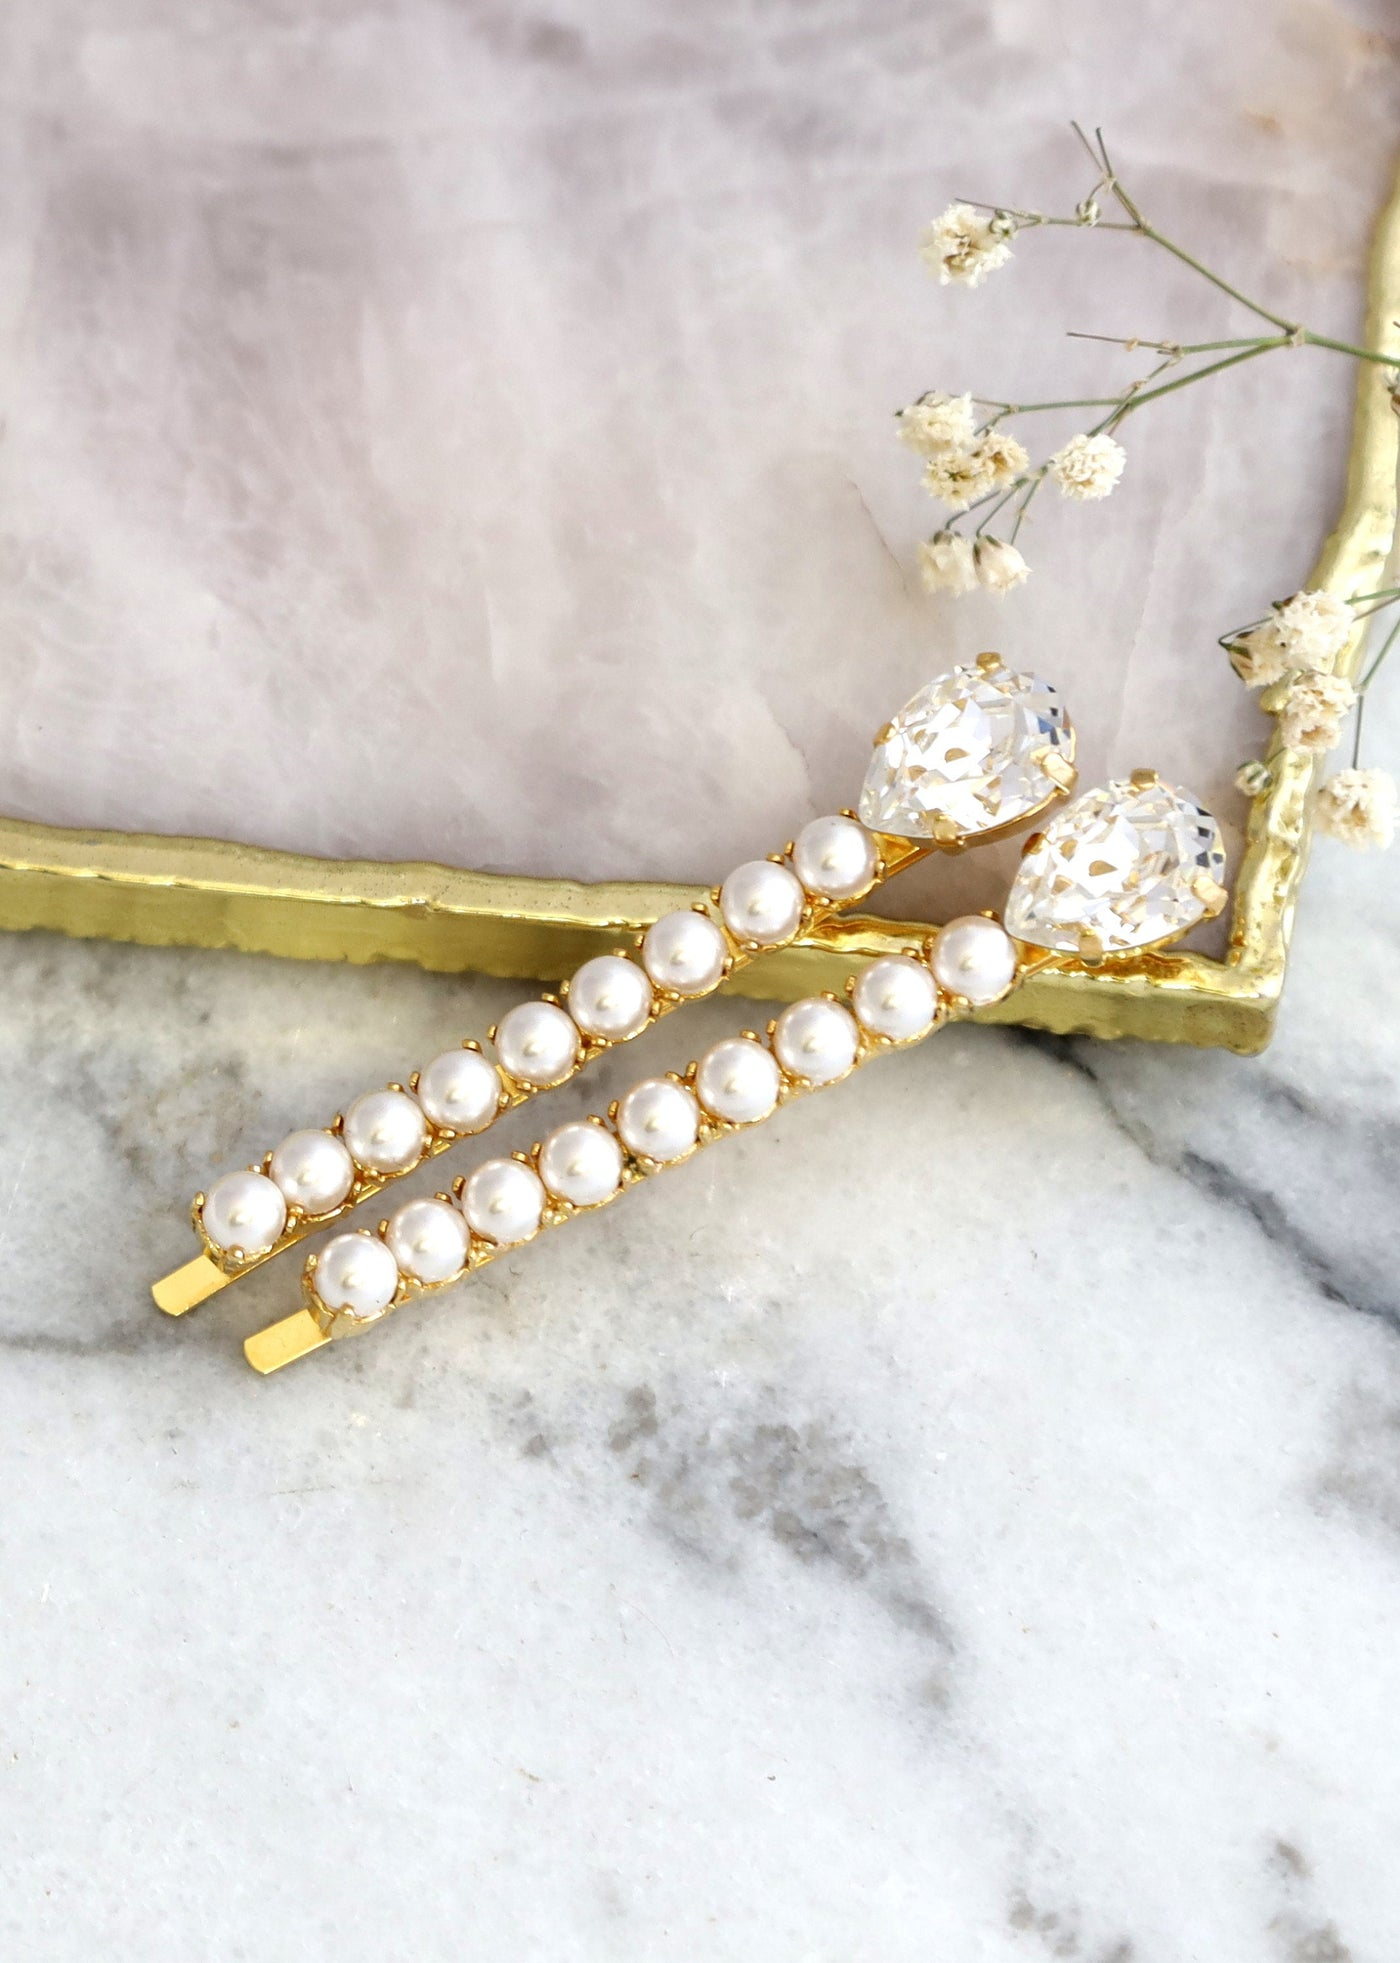 Bridal Pearl Hair Pin, Bridal Swarovski Bobby Pin, Bridal Pearls Bobby Pins, Wedding Hair Jewelry, Crystal Bridal Hair Jewelry, Hair Pin